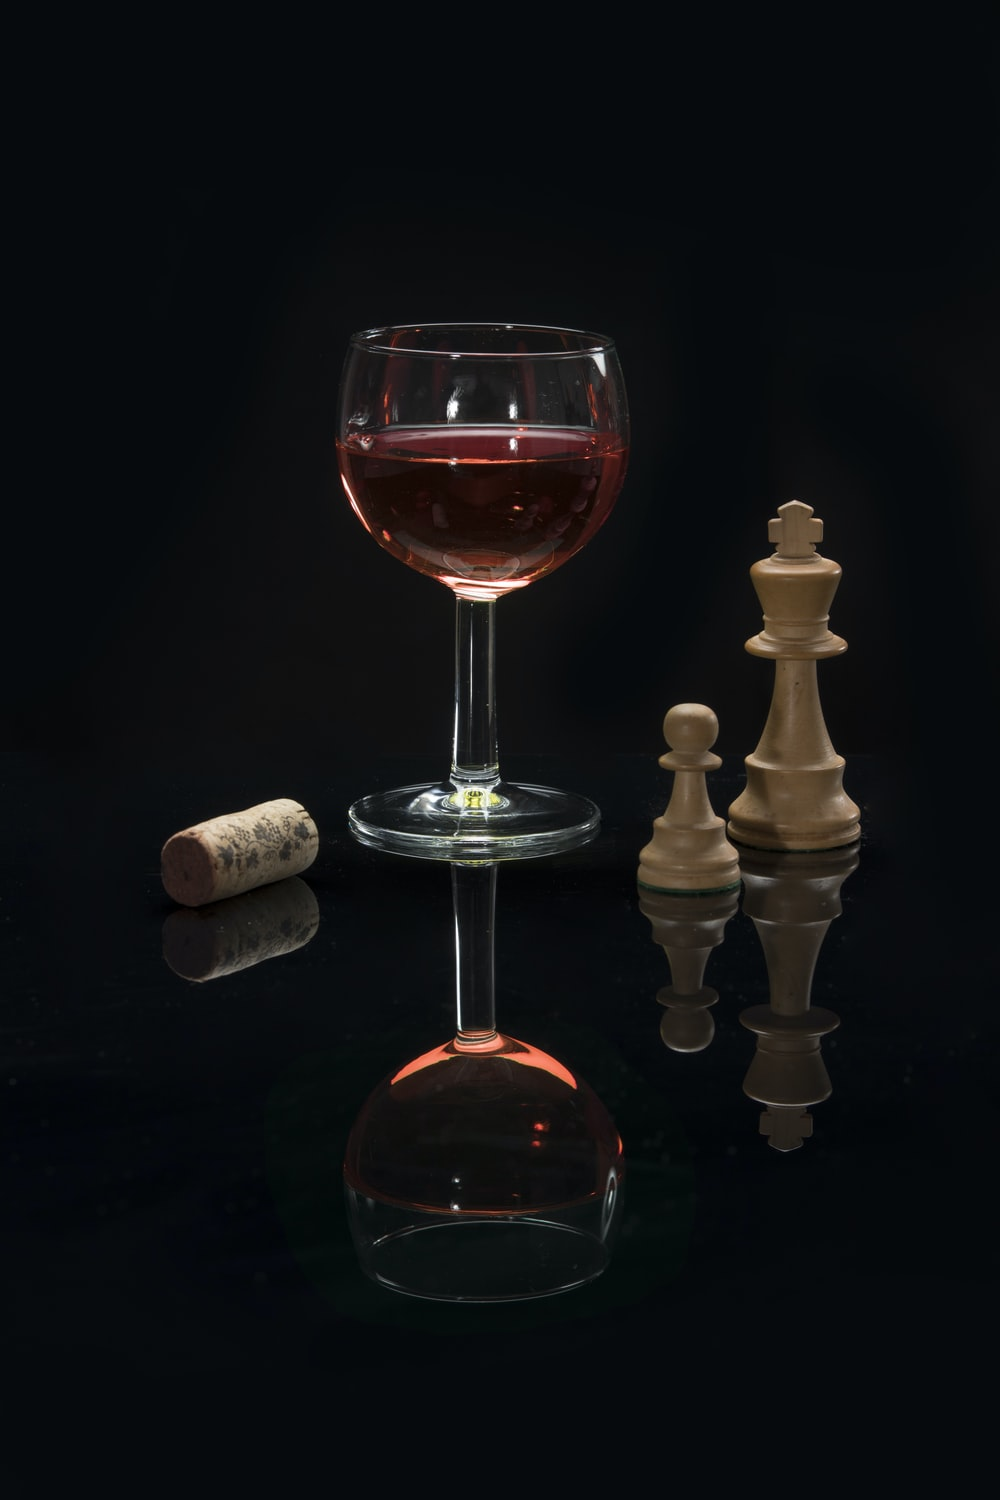 long stem wine glass with red liquid